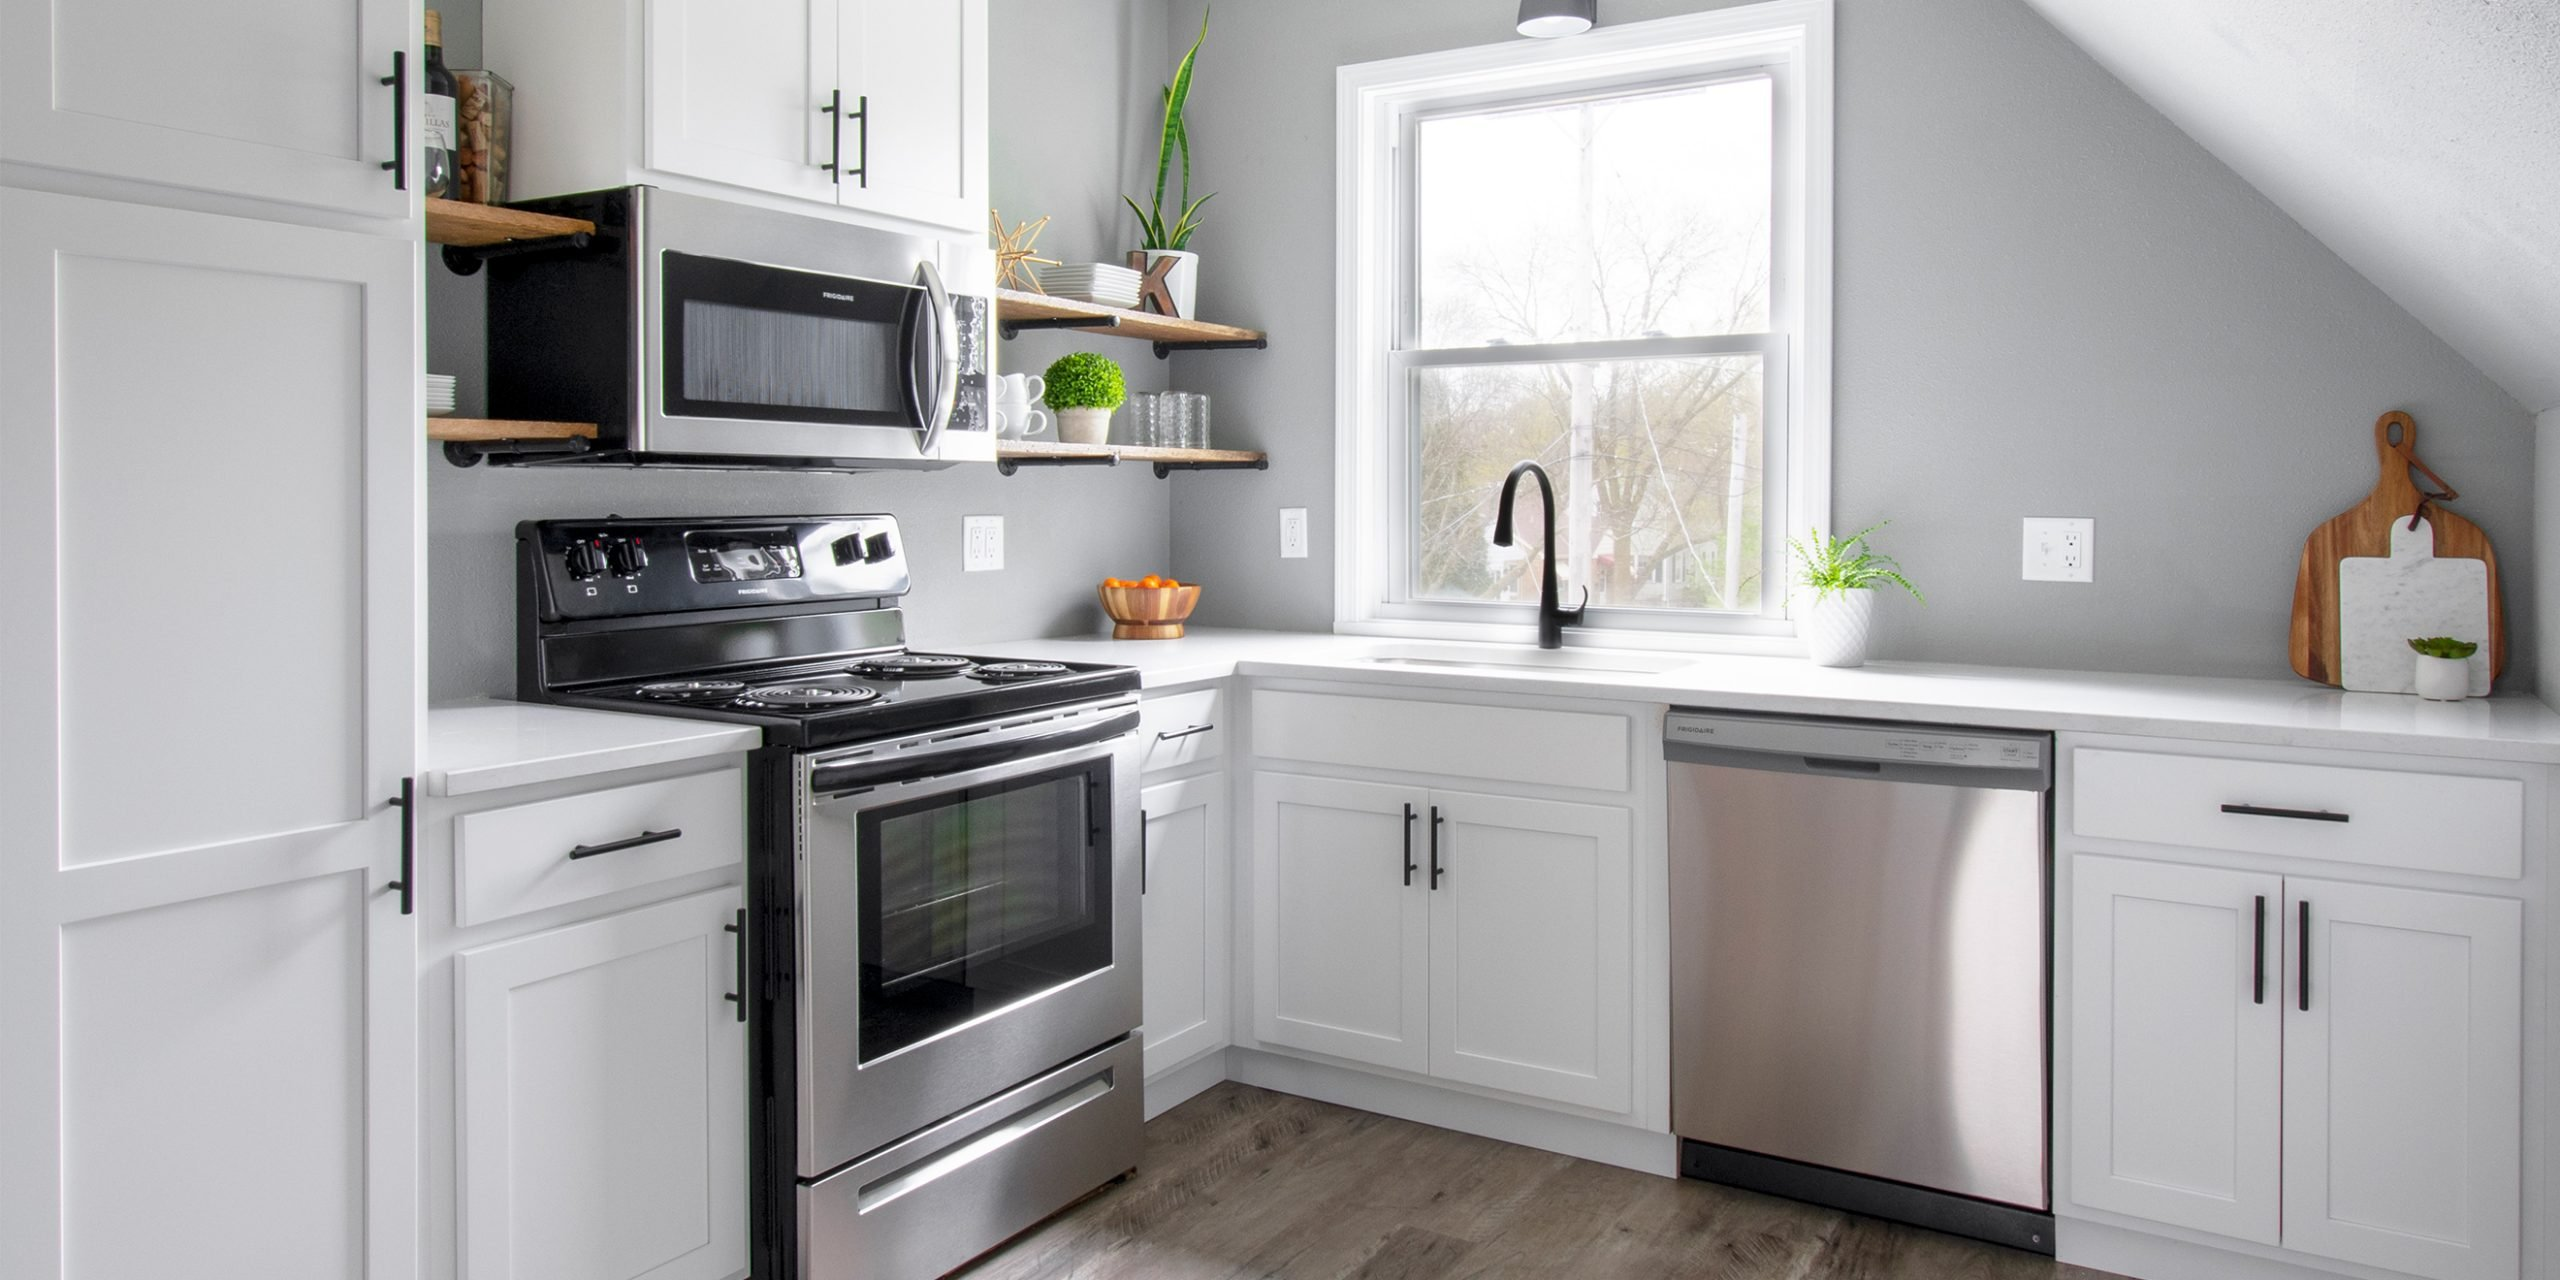 Wauwatosa White shaker cabinets with open shelves and matte black hardware